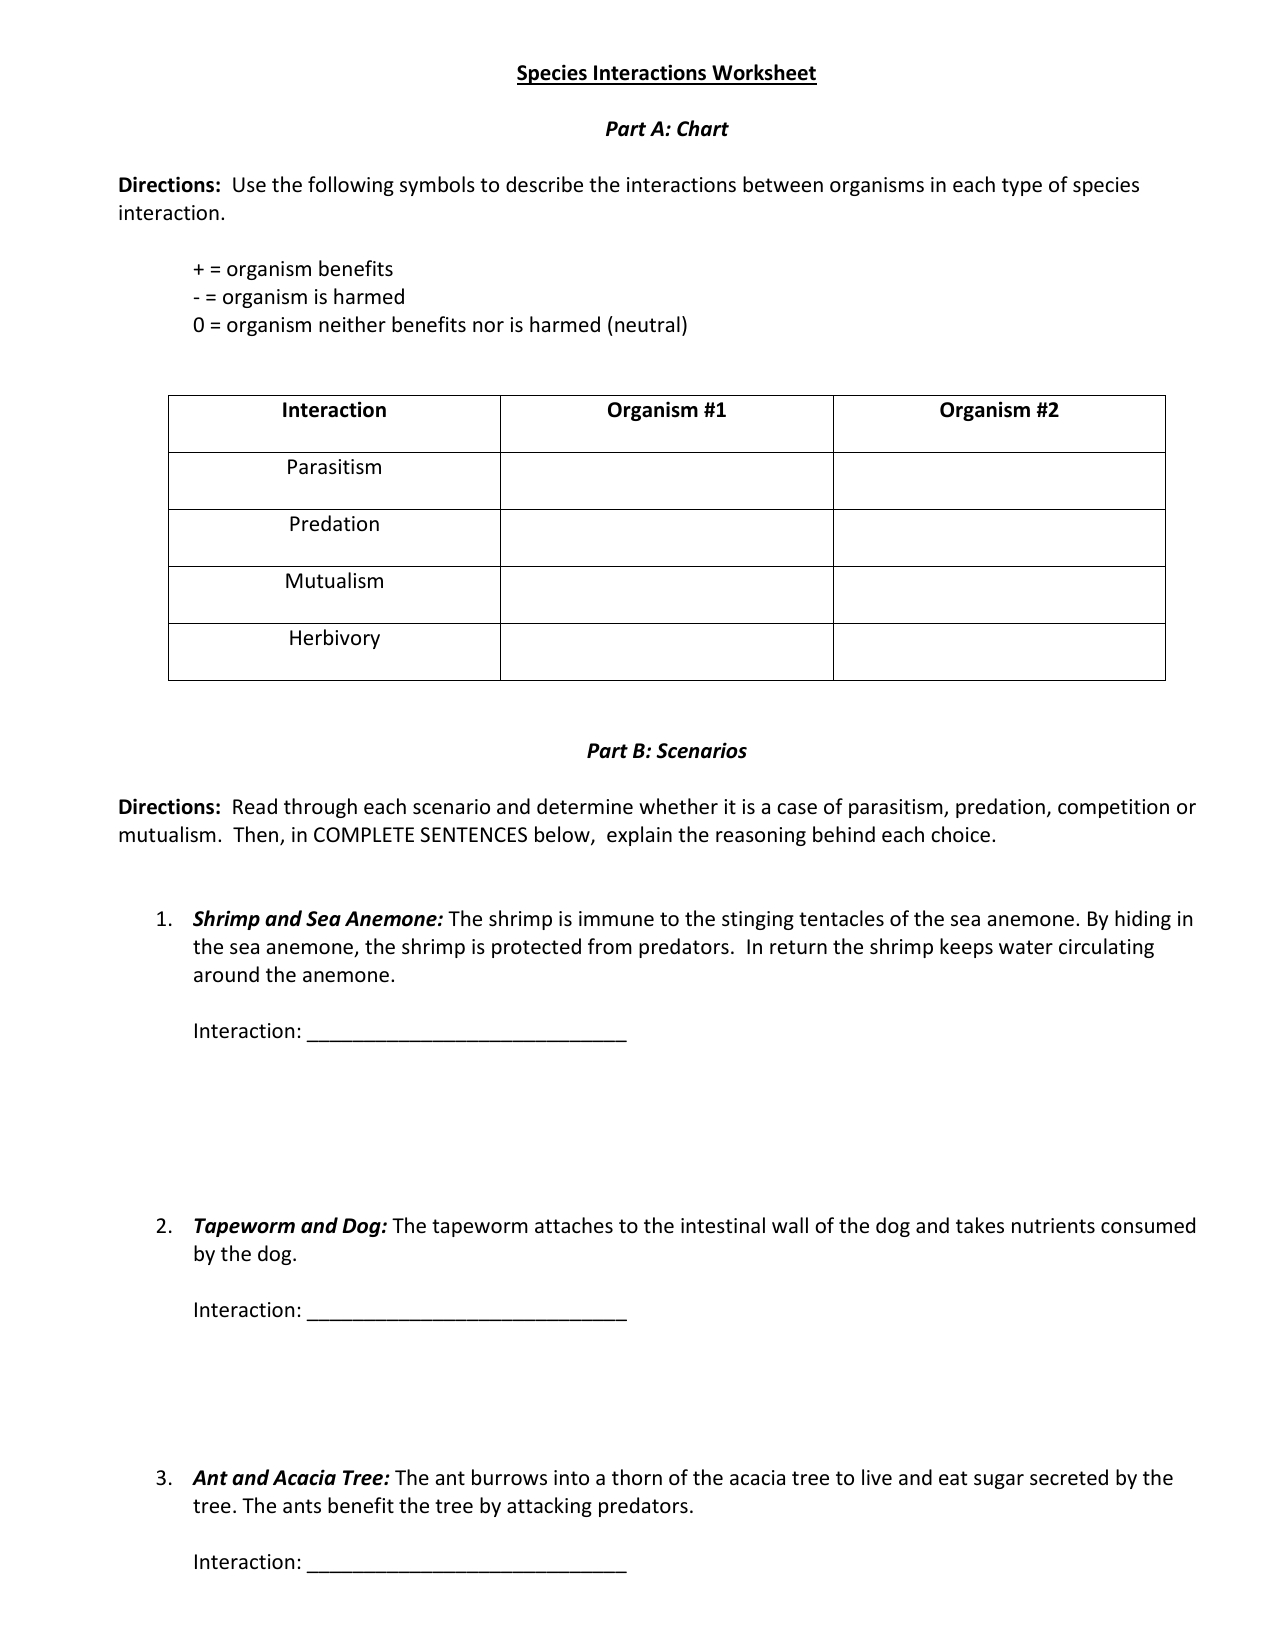 Species Interactions Worksheet Answer Key Excelguider